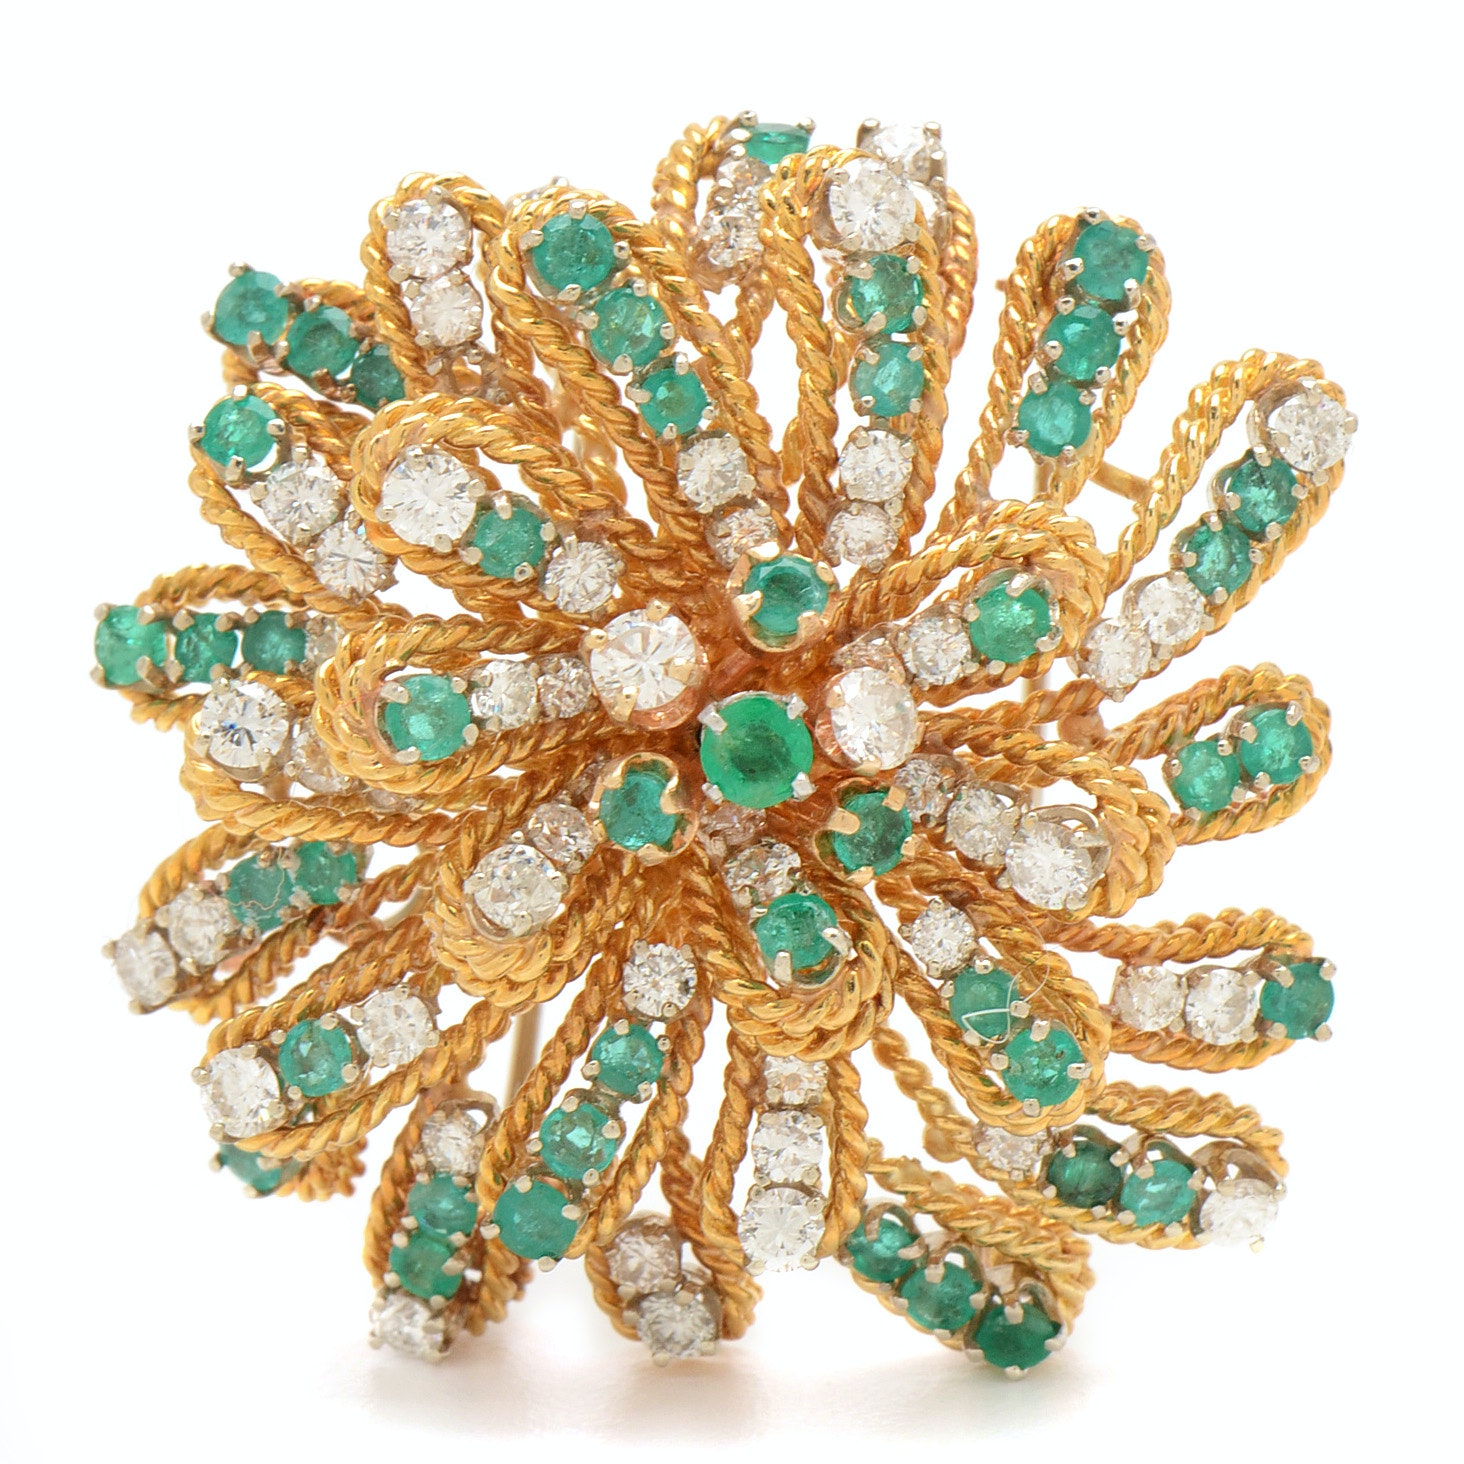 Circa 1970s 18K Yellow Gold 3.50 CTW Diamond and Emerald Pinwheel Brooch